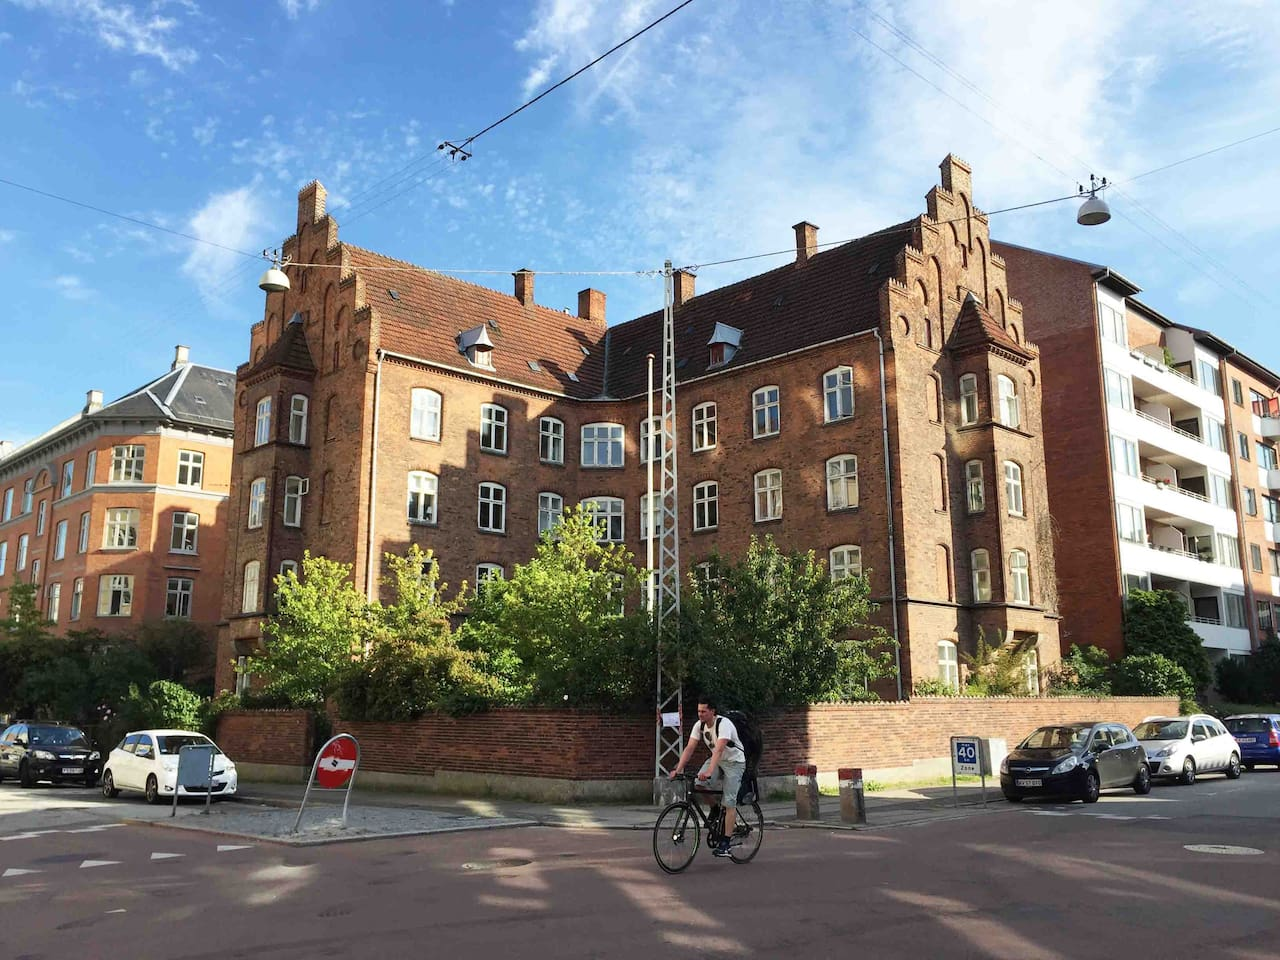 View of the building of the apartment